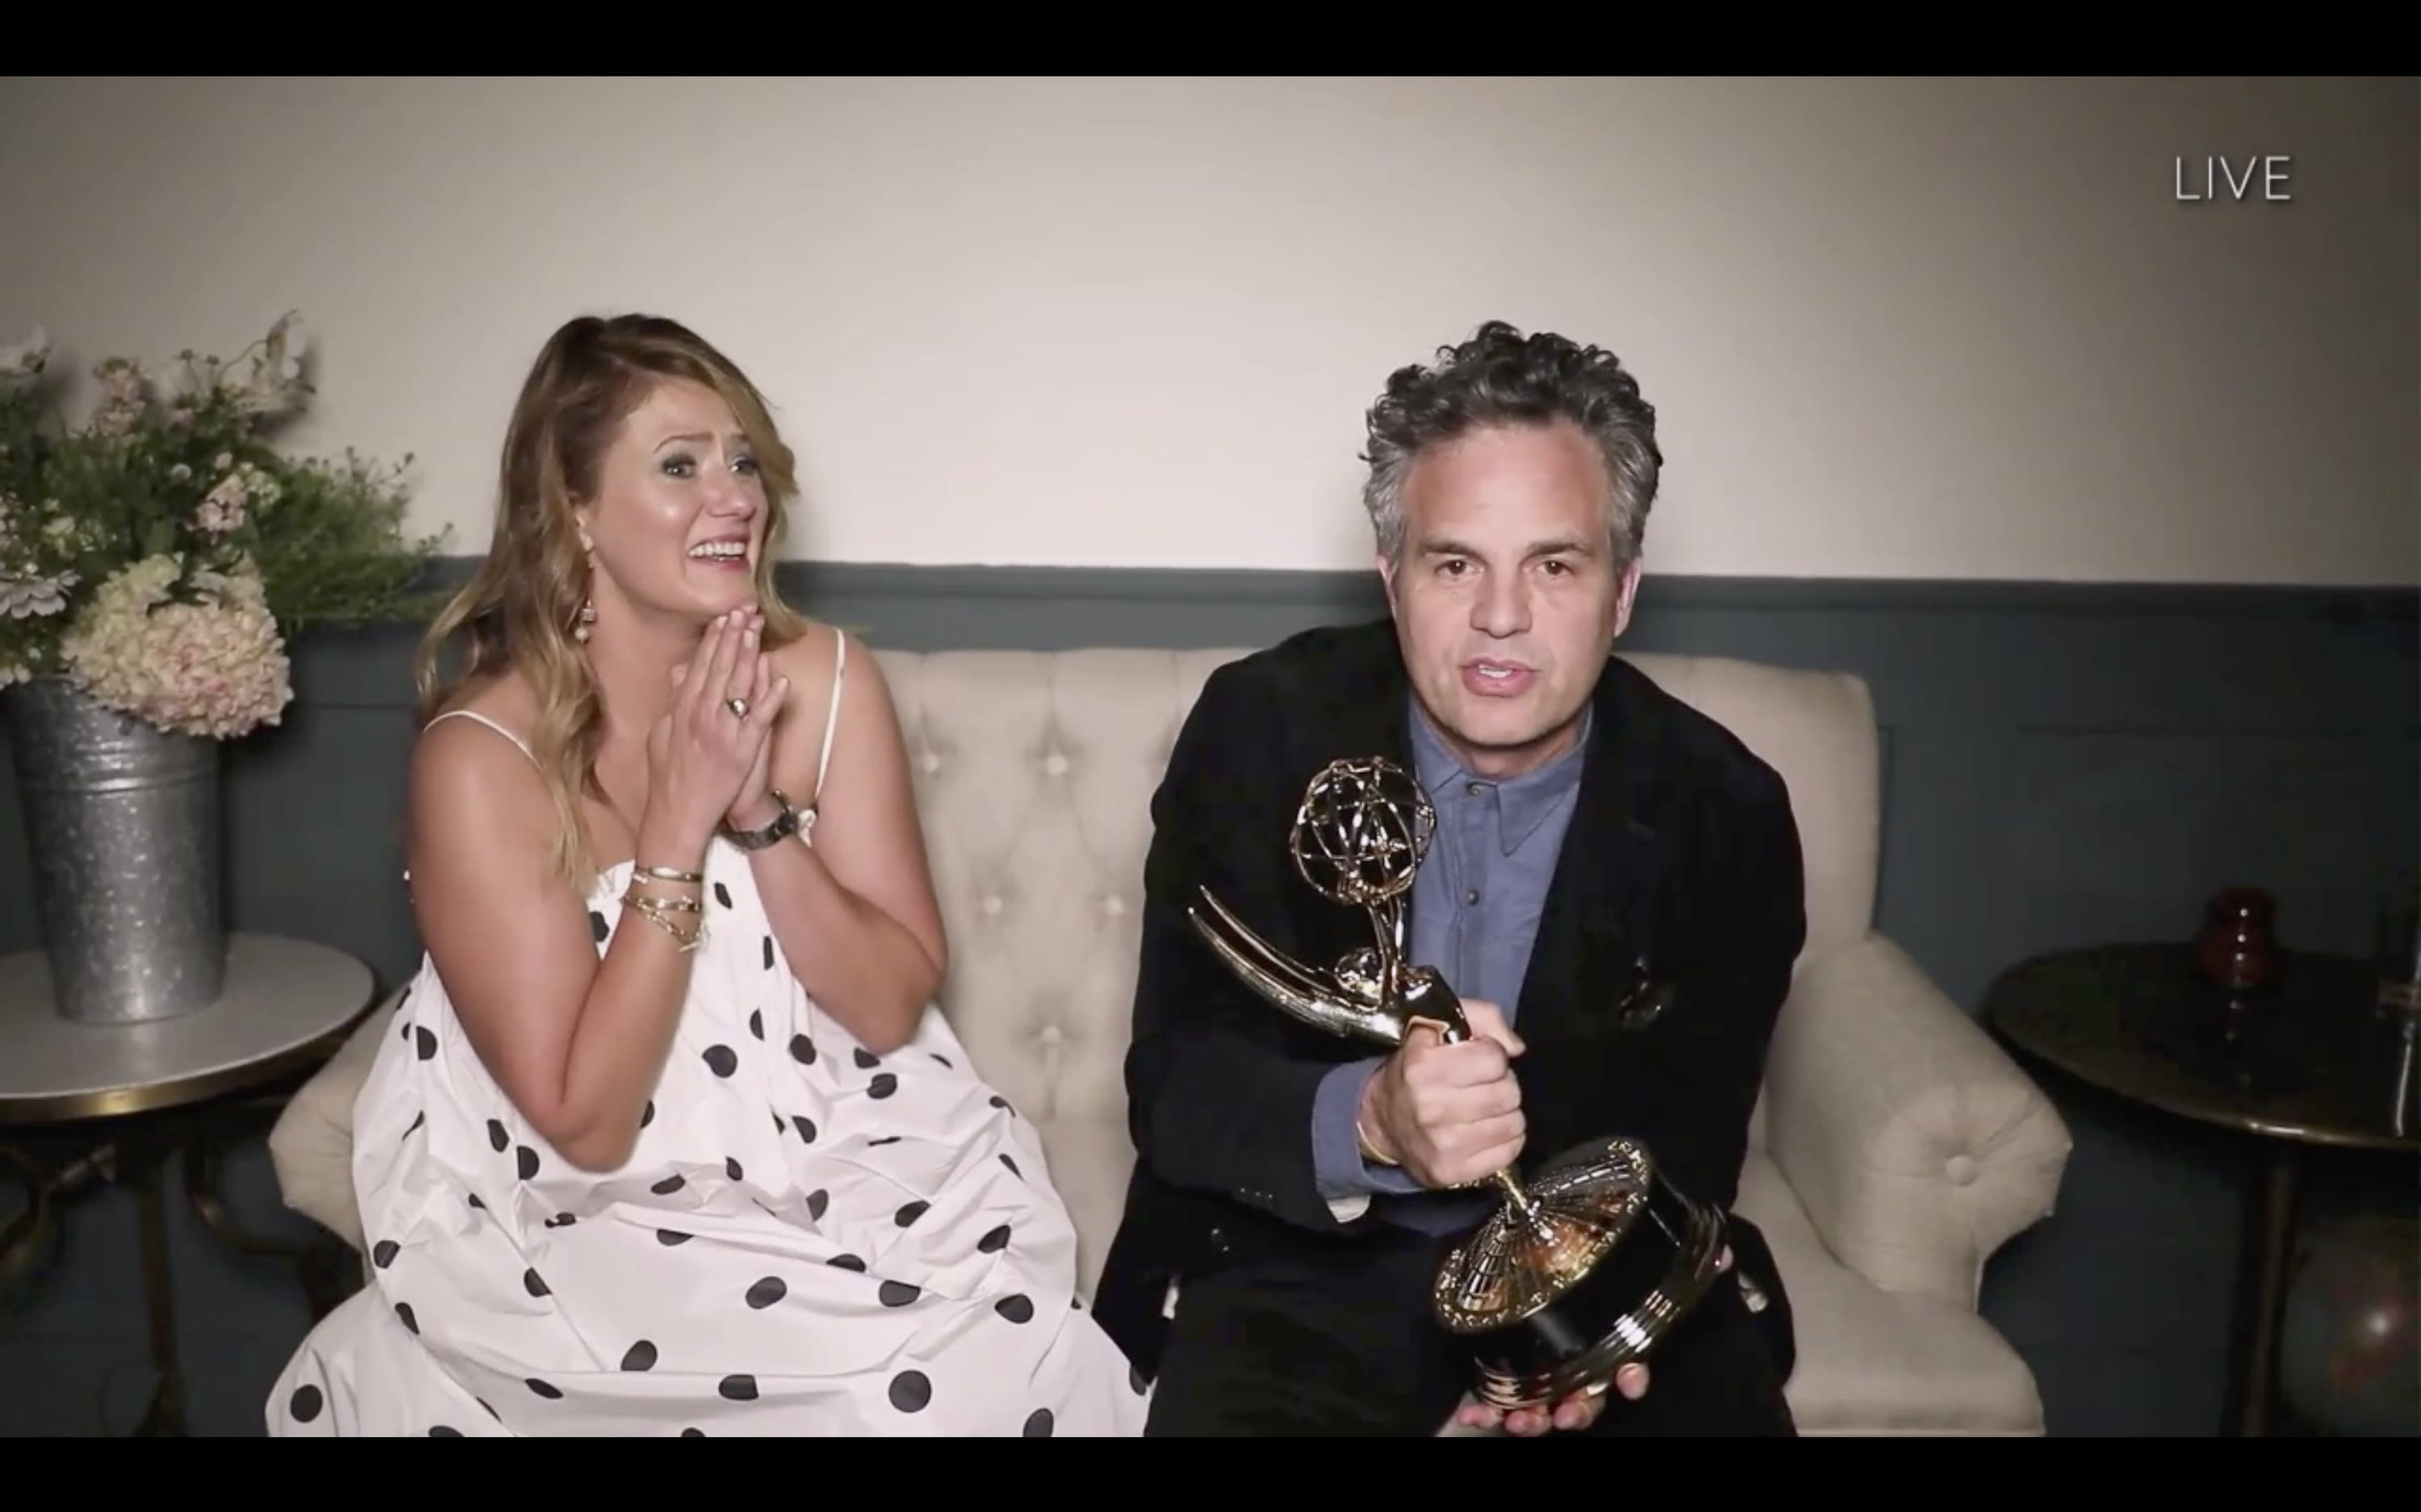 "THE 72ND EMMY® AWARDS - Hosted by Jimmy Kimmel, the ""72nd Emmy® Awards"" will broadcast SUNDAY, SEPT. 20 (8:00 p.m. EDT/6:00 p.m. MDT/5:00 p.m. PDT), on ABC. (ABC via Getty Images)MARK RUFFALO"